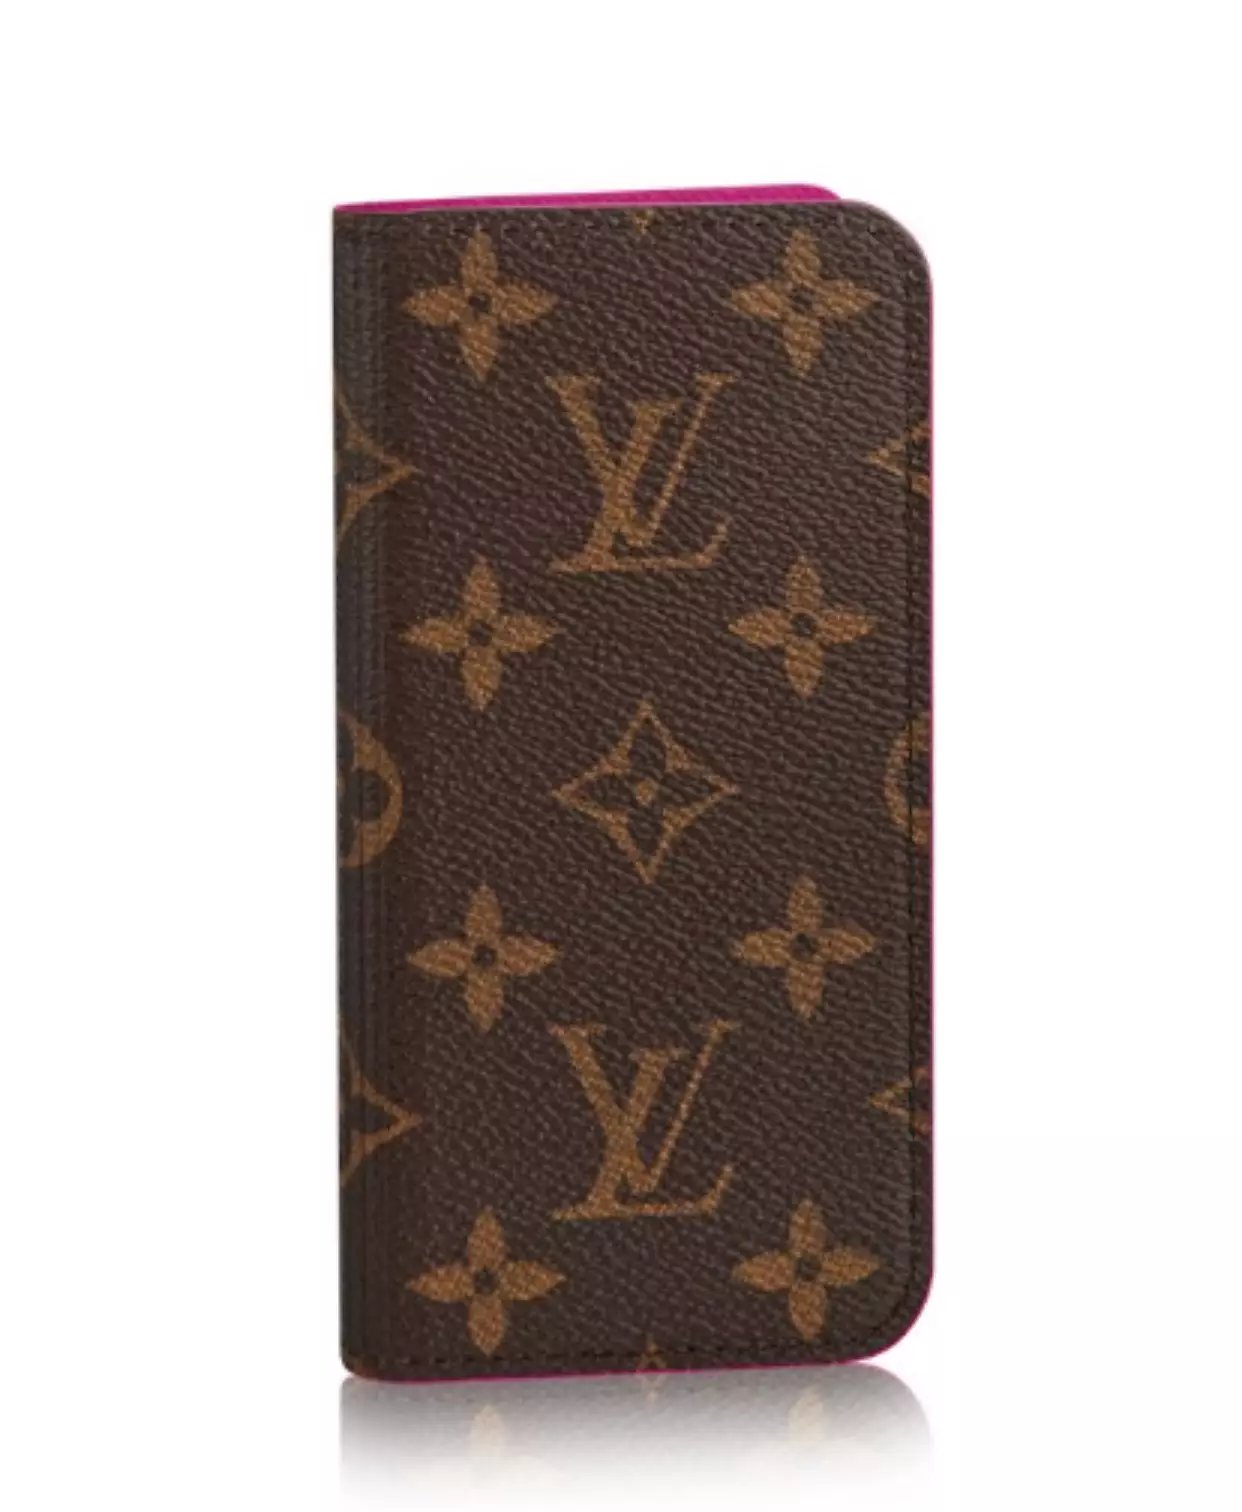 iphone case erstellen iphone schutzhülle selbst gestalten Louis Vuitton iphone7 hülle handyhülle 7 iphone 6 bestellen iphone hülle 7 s iphone rück7ite coole iphone 7 hüllen iphone schutz